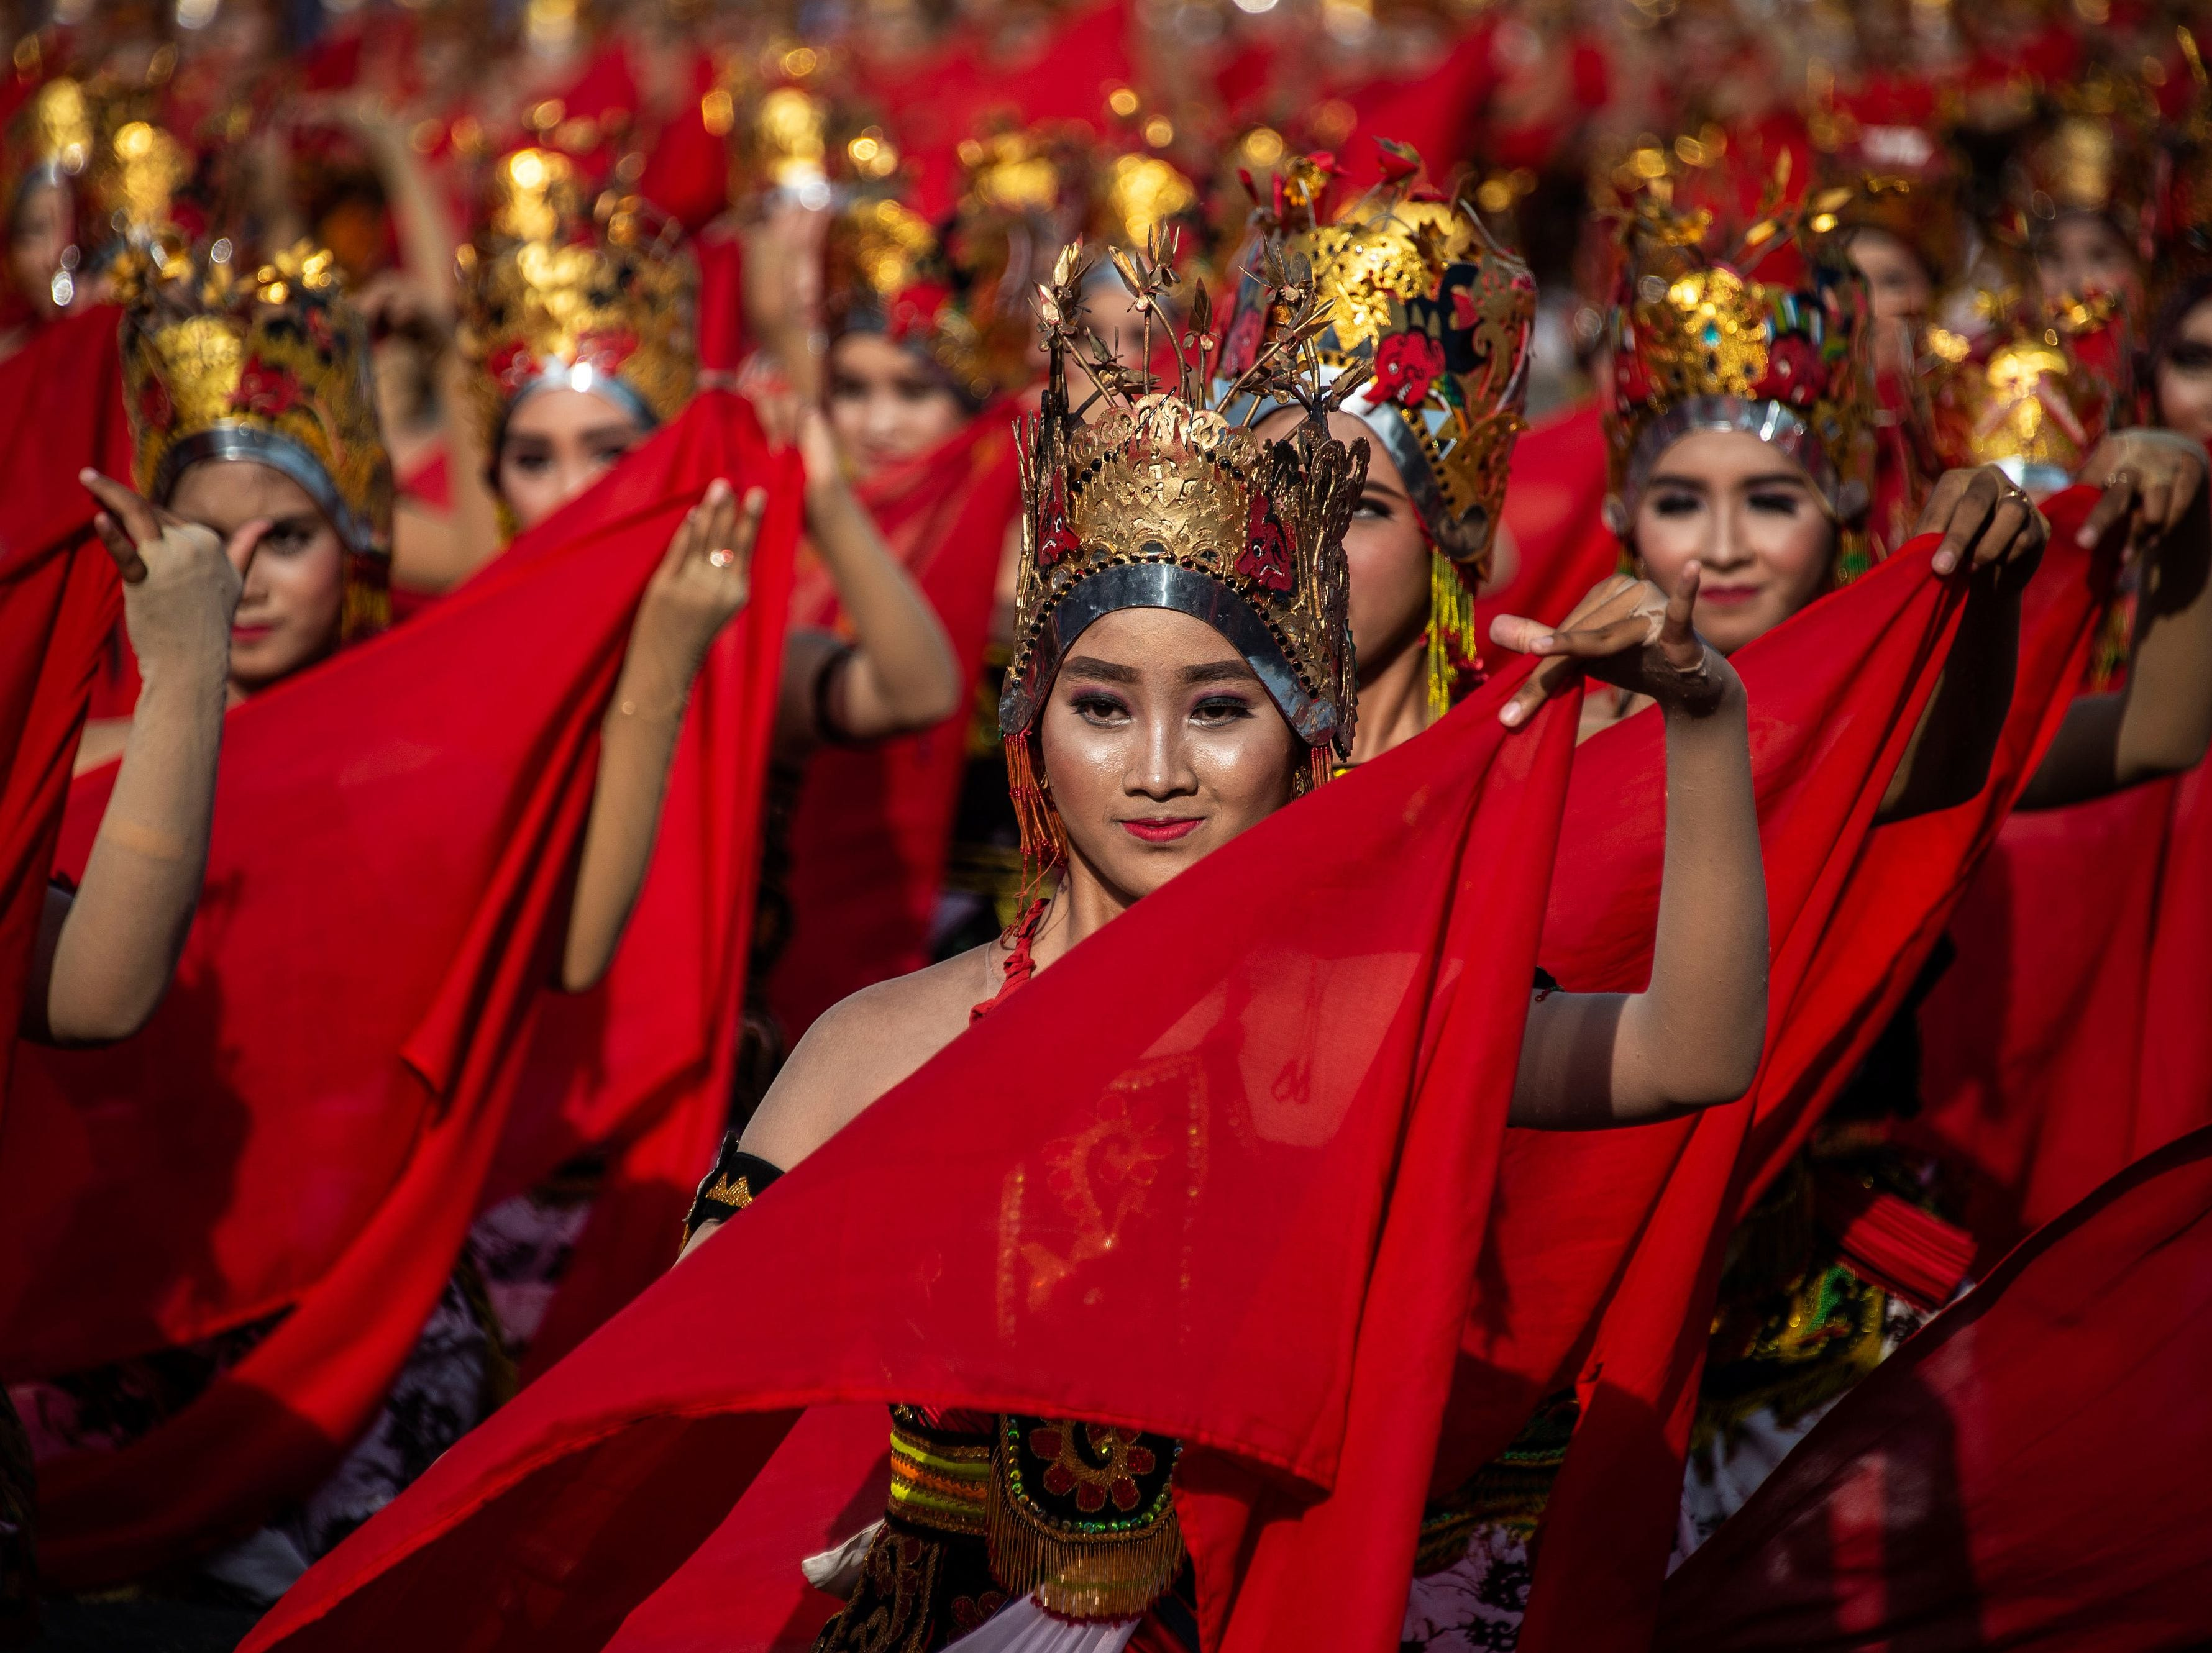 Traditional dancers performing the Gandrung Sewu dance at the festival on Boom beach in Banyuwangi, East Java on Oct. 20, 2018.